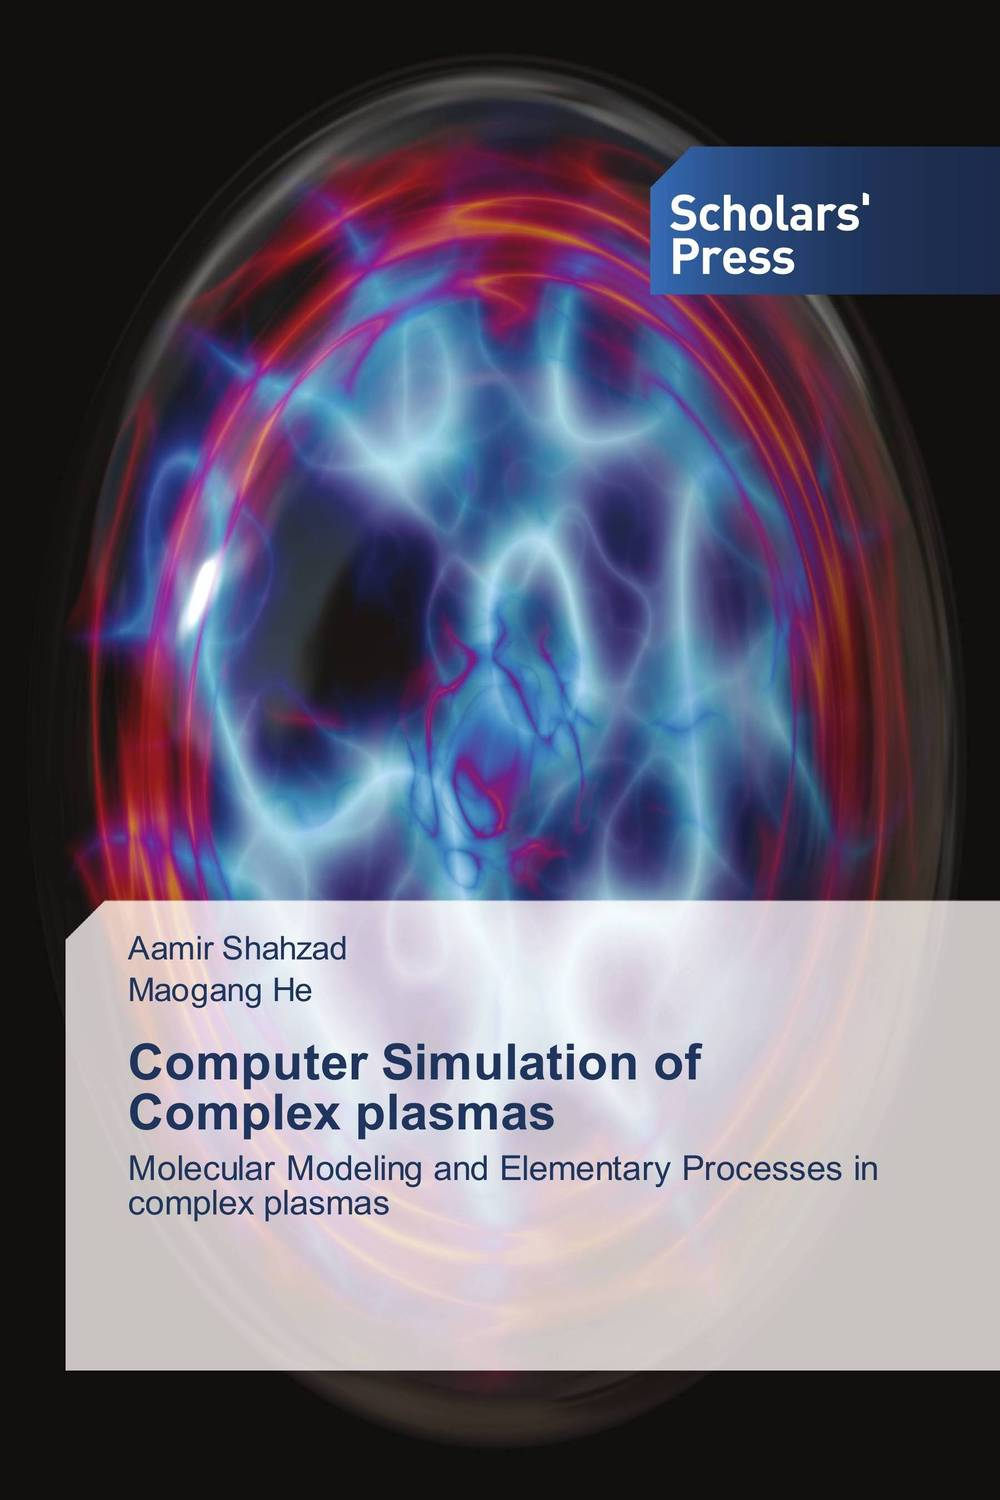 Computer Simulation of Complex plasmas molecular and nano electronics analysis design and simulation 17